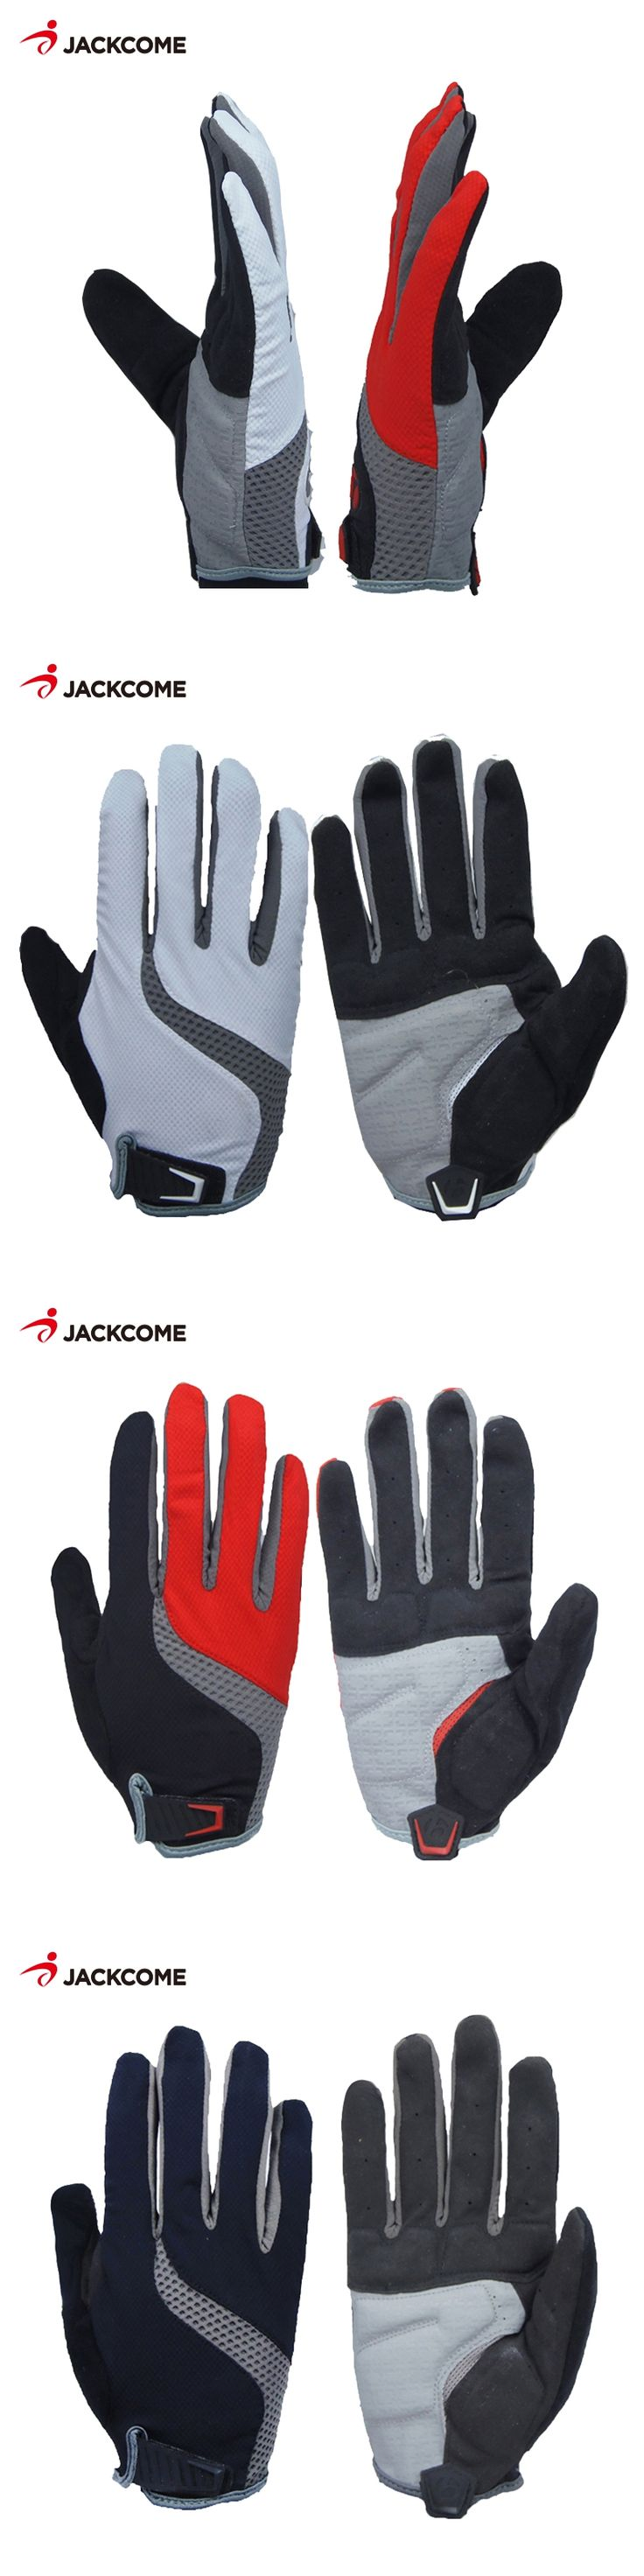 JACKCOME Cycling Bike Gloves Sponge Pad Long Finger Motorcycle Gloves For Bicycle Mountain Bike Glove Shockproof MTB CG2820